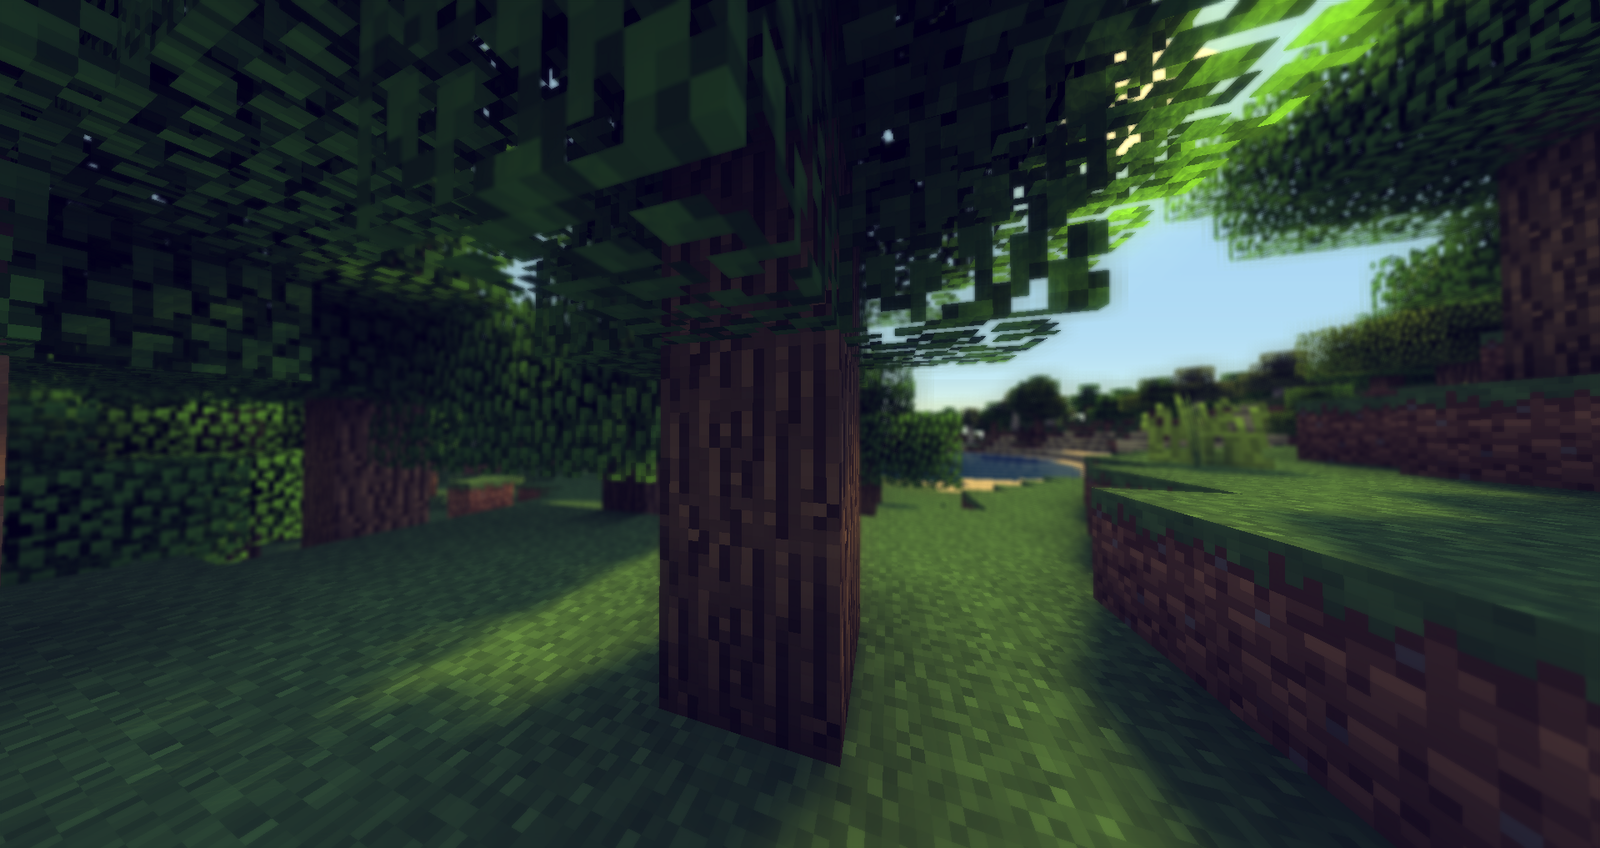 35476  sj8m [1.10.2] MrMeep x3's Shaders Mod Download